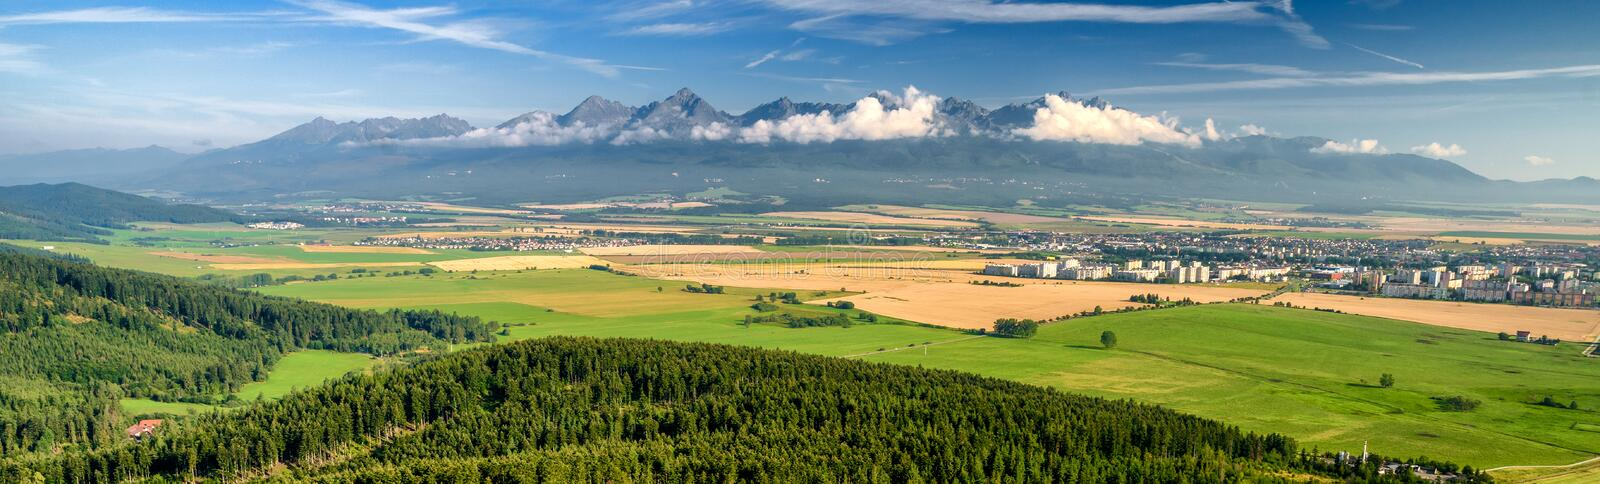 HIgh Tatras mountains and city Poprad, Slovakia. Panorama landscape royalty free stock photo